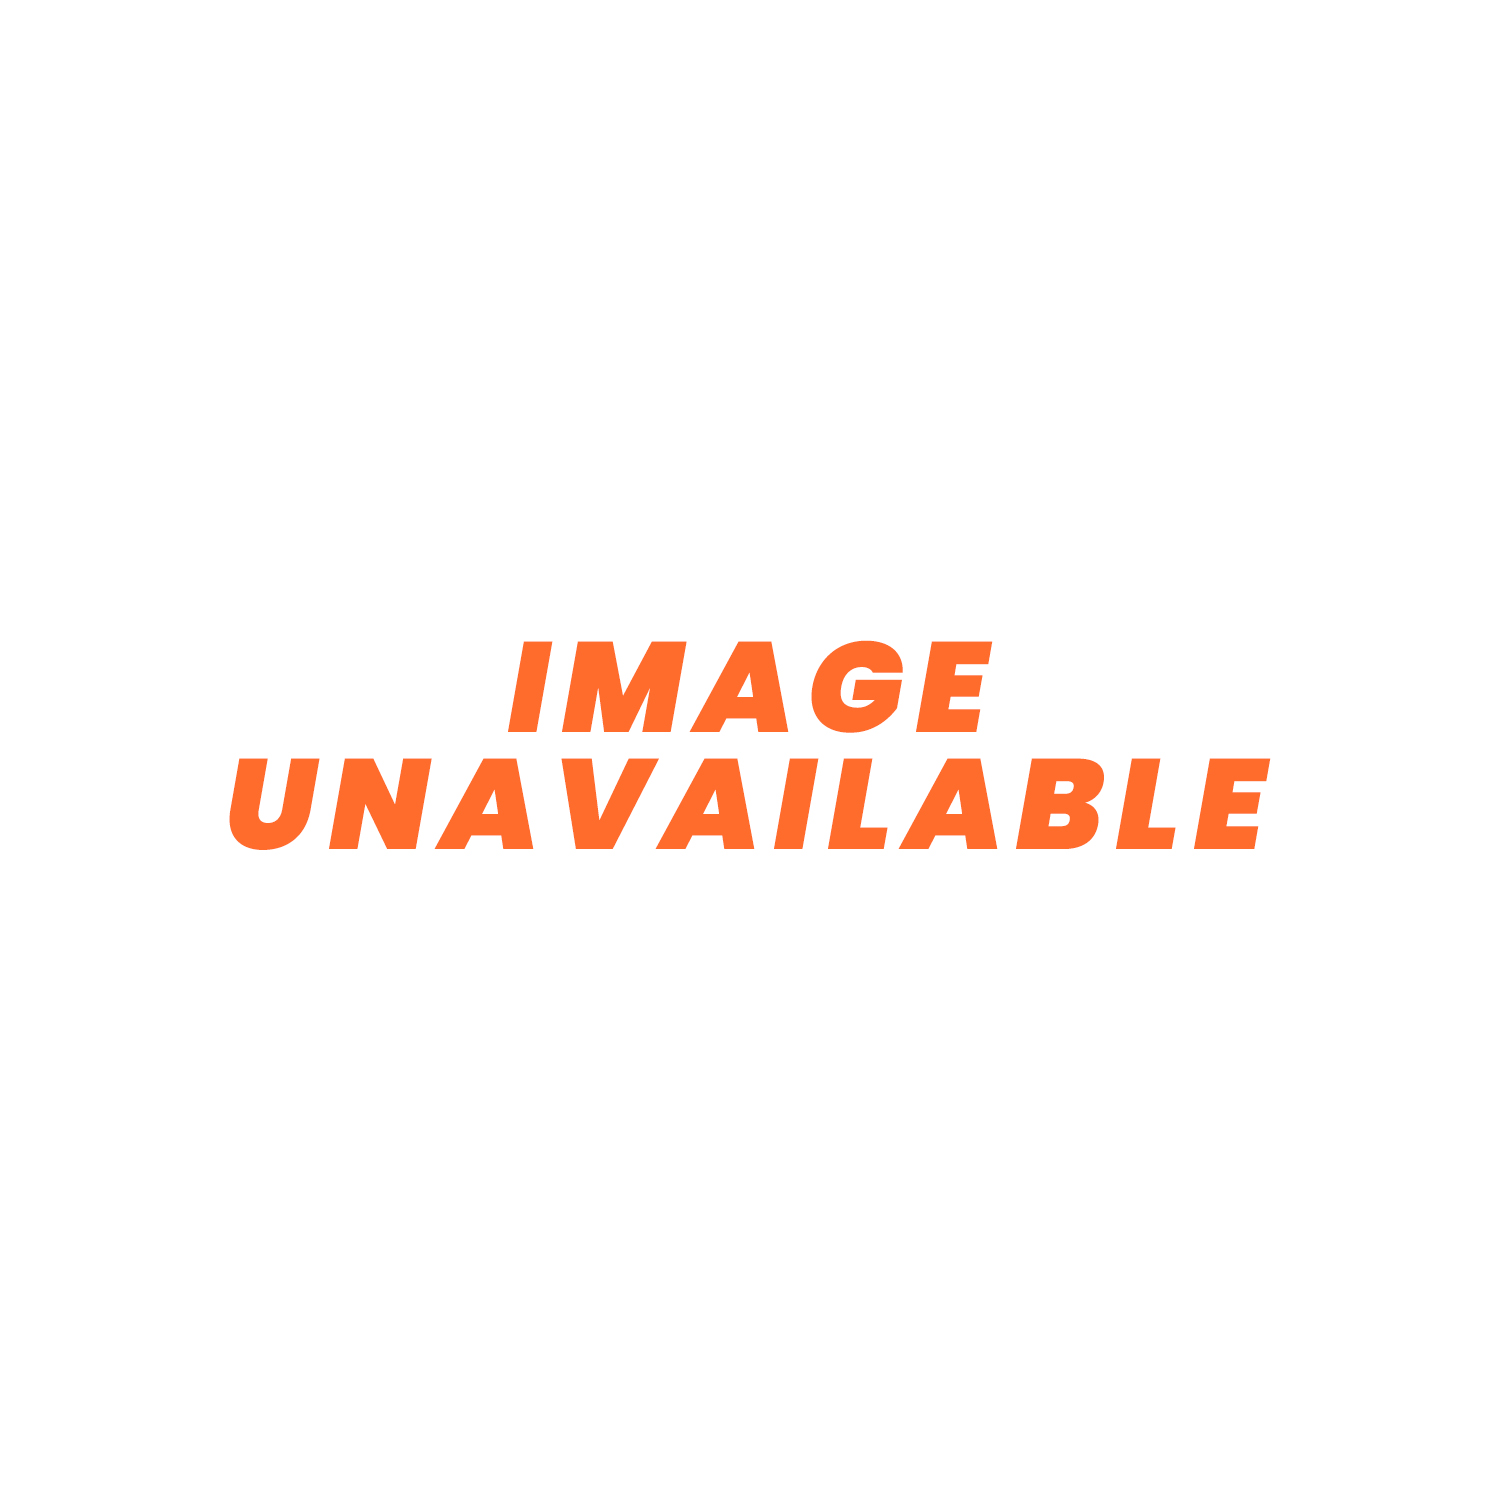 SK Extension Cable 230v 8.0m - 1555458